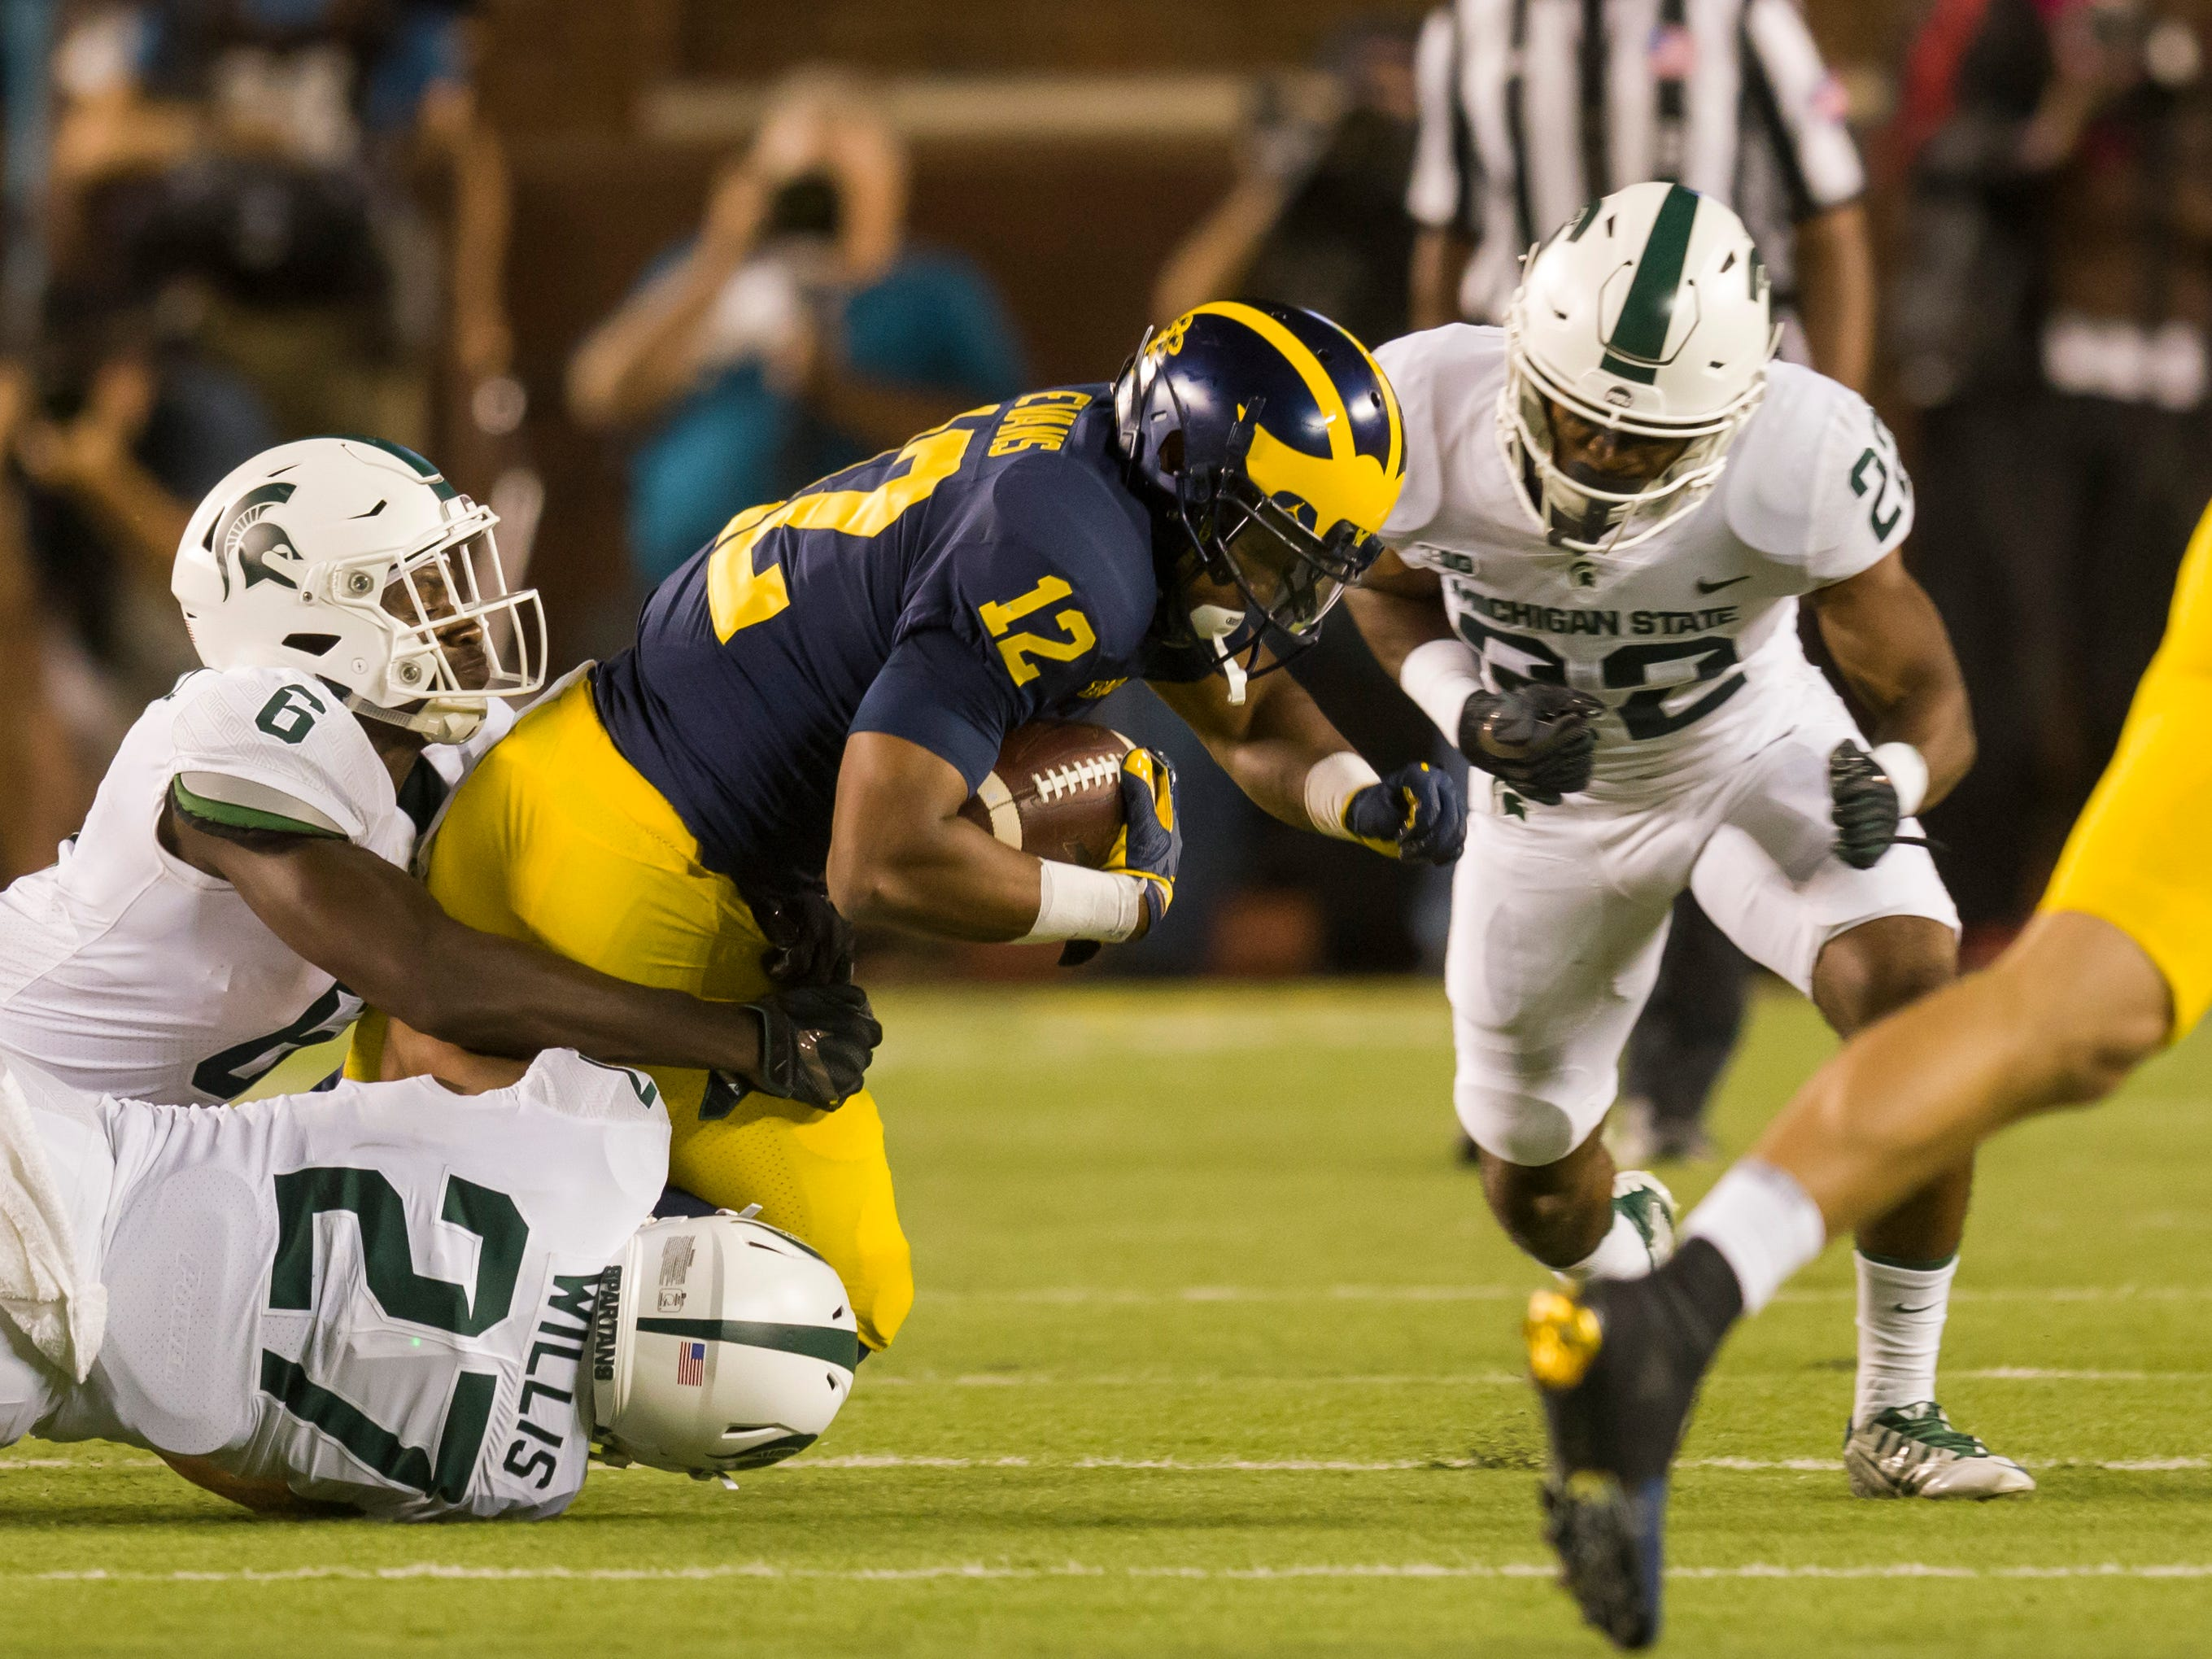 Michigan running back Chris Evans is tackled by Michigan State safety David Dowell (6) and safety Khari Willis (27) in the first quarter of last season's game in Ann Arbor.